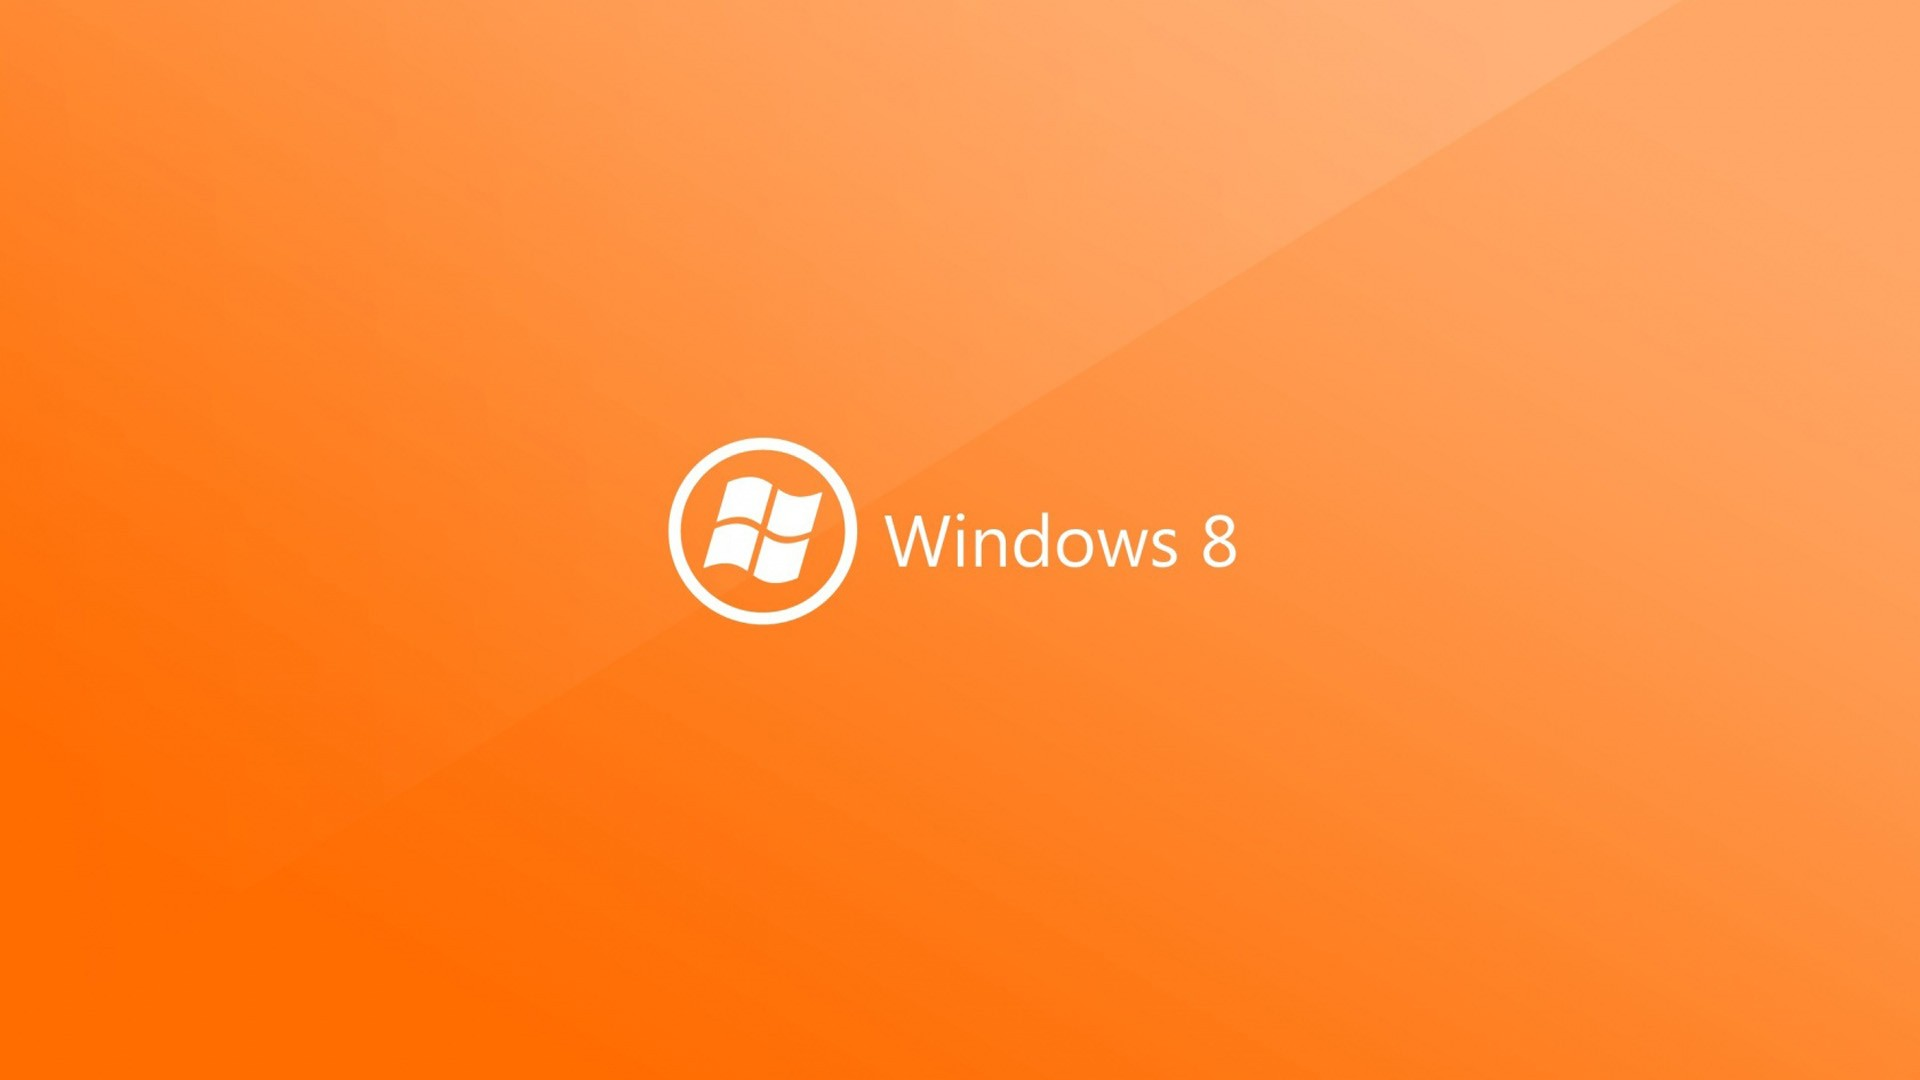 windows latest windows hd wallpapers free download download 1920x1080